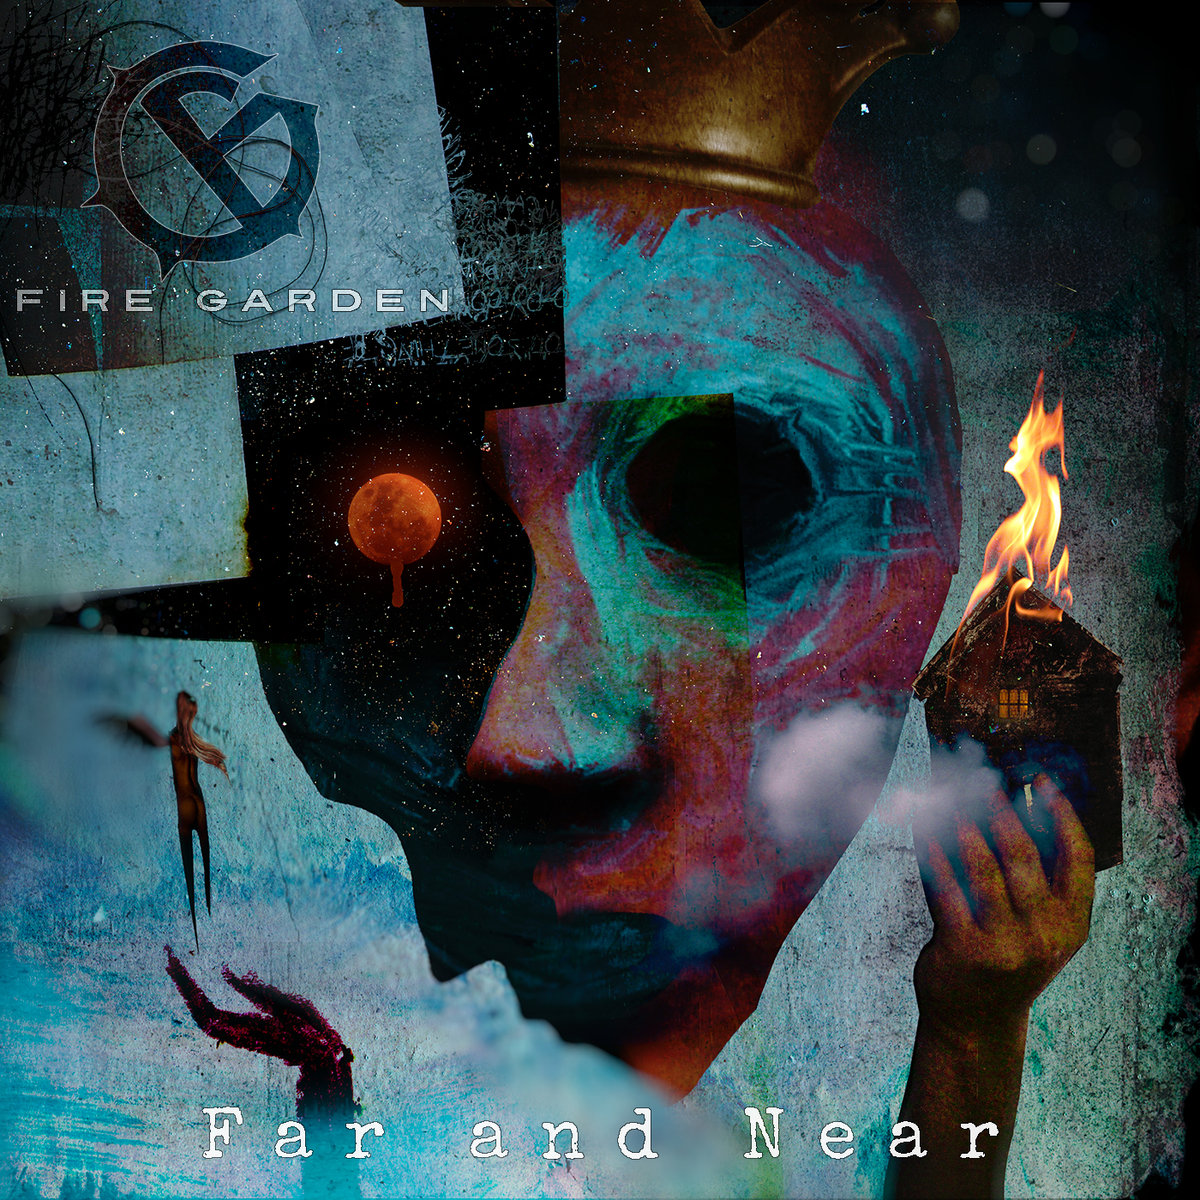 Fire Garden – 'Far and Near' (Album Review)